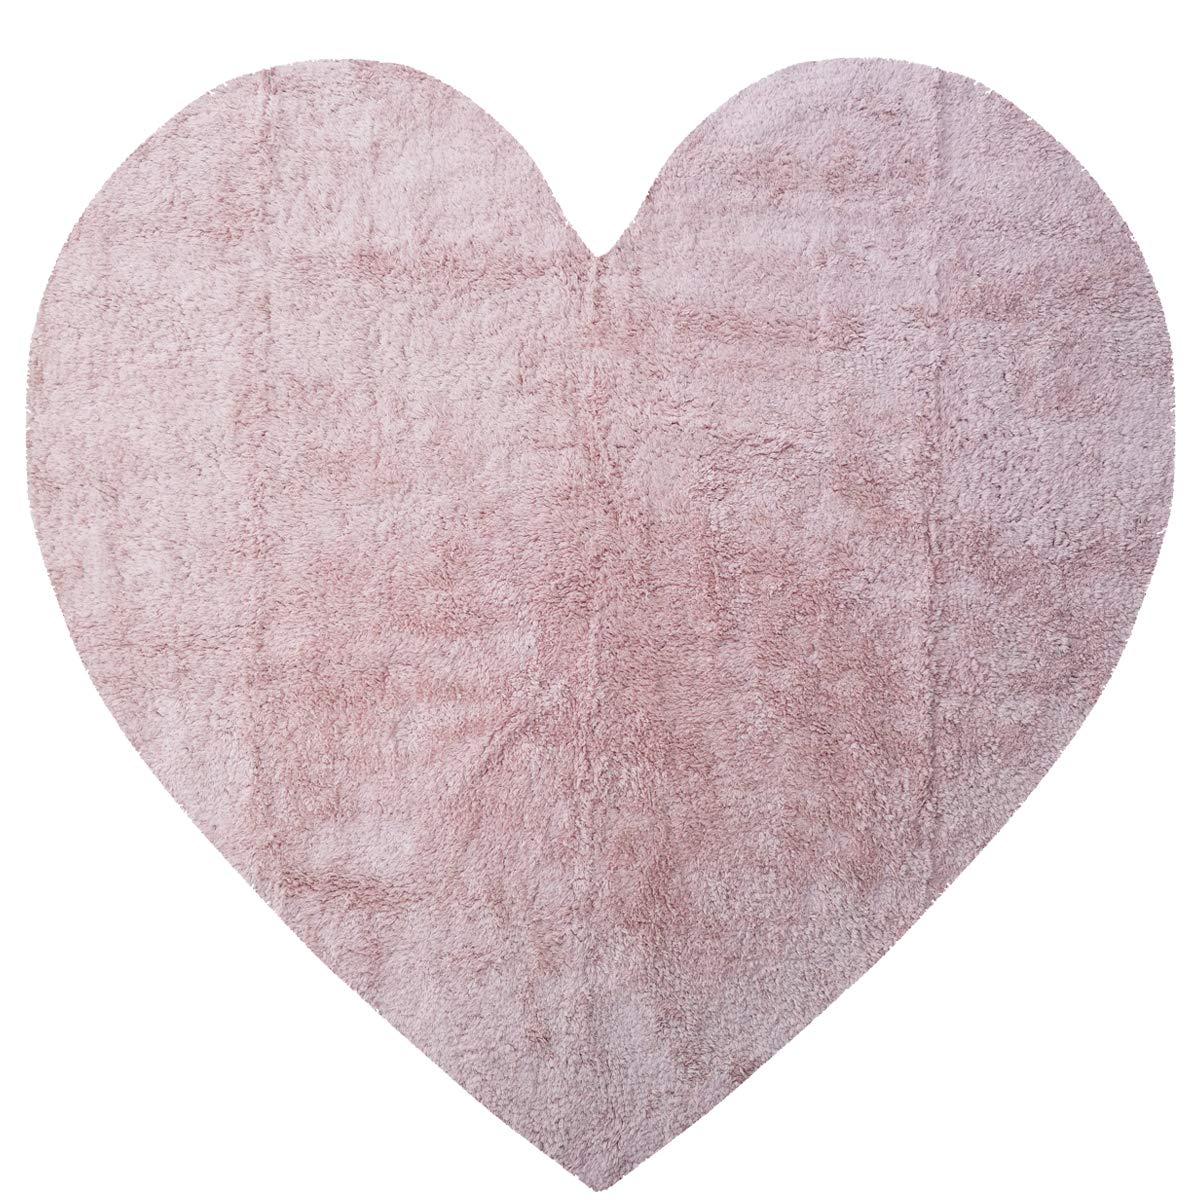 Habudda Pink Heart Shape Area Rugs for Girls Kids Room Warm Soft 100% Cotton Luxury Plush Handmade Knitted Nursery Decoration Rugs Baby Crawling Rugs Carpet 1.2meter